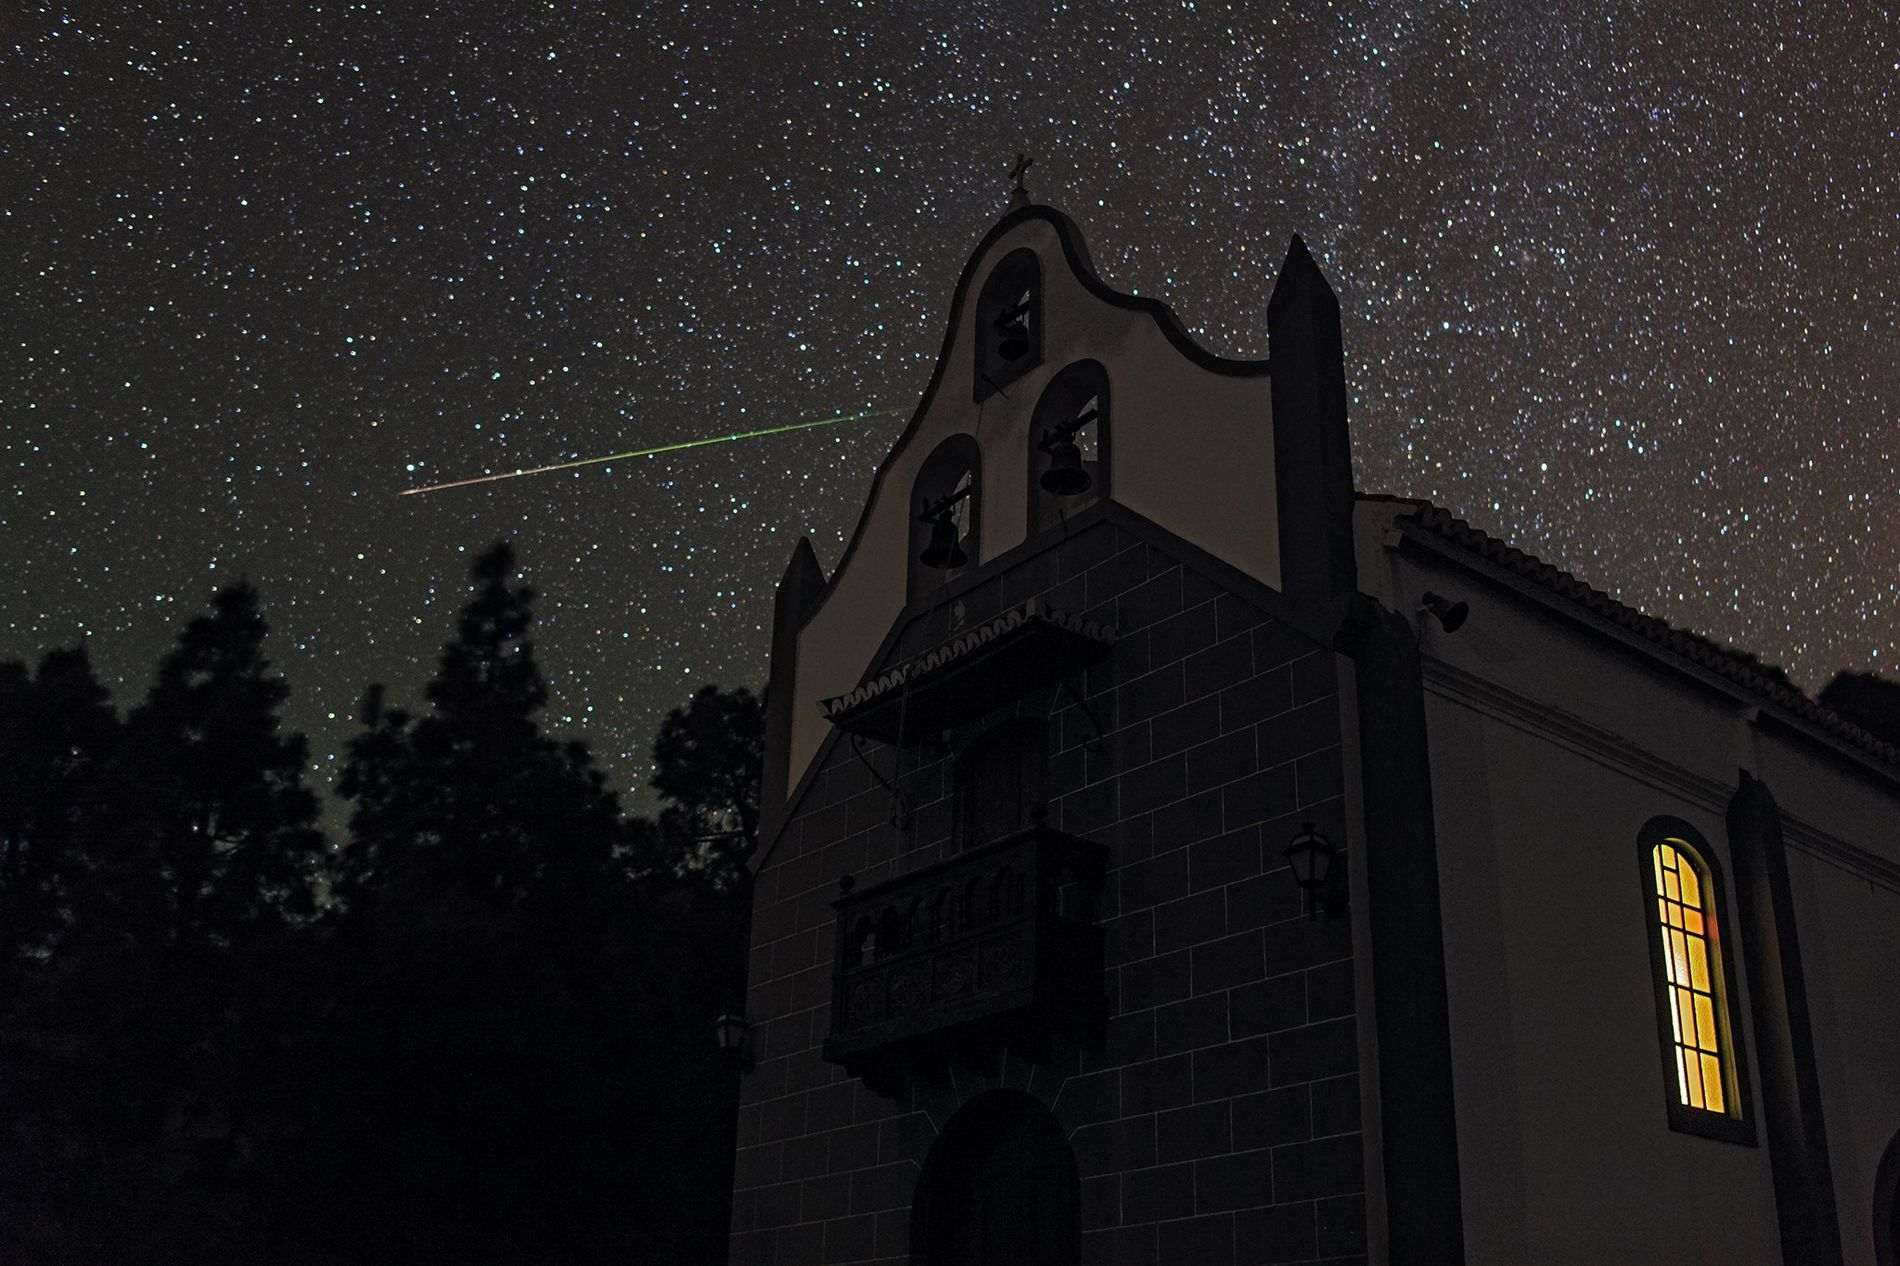 A meteor streaks through the constellation Ursa Minor, the little bear, as seen from La Palma ...